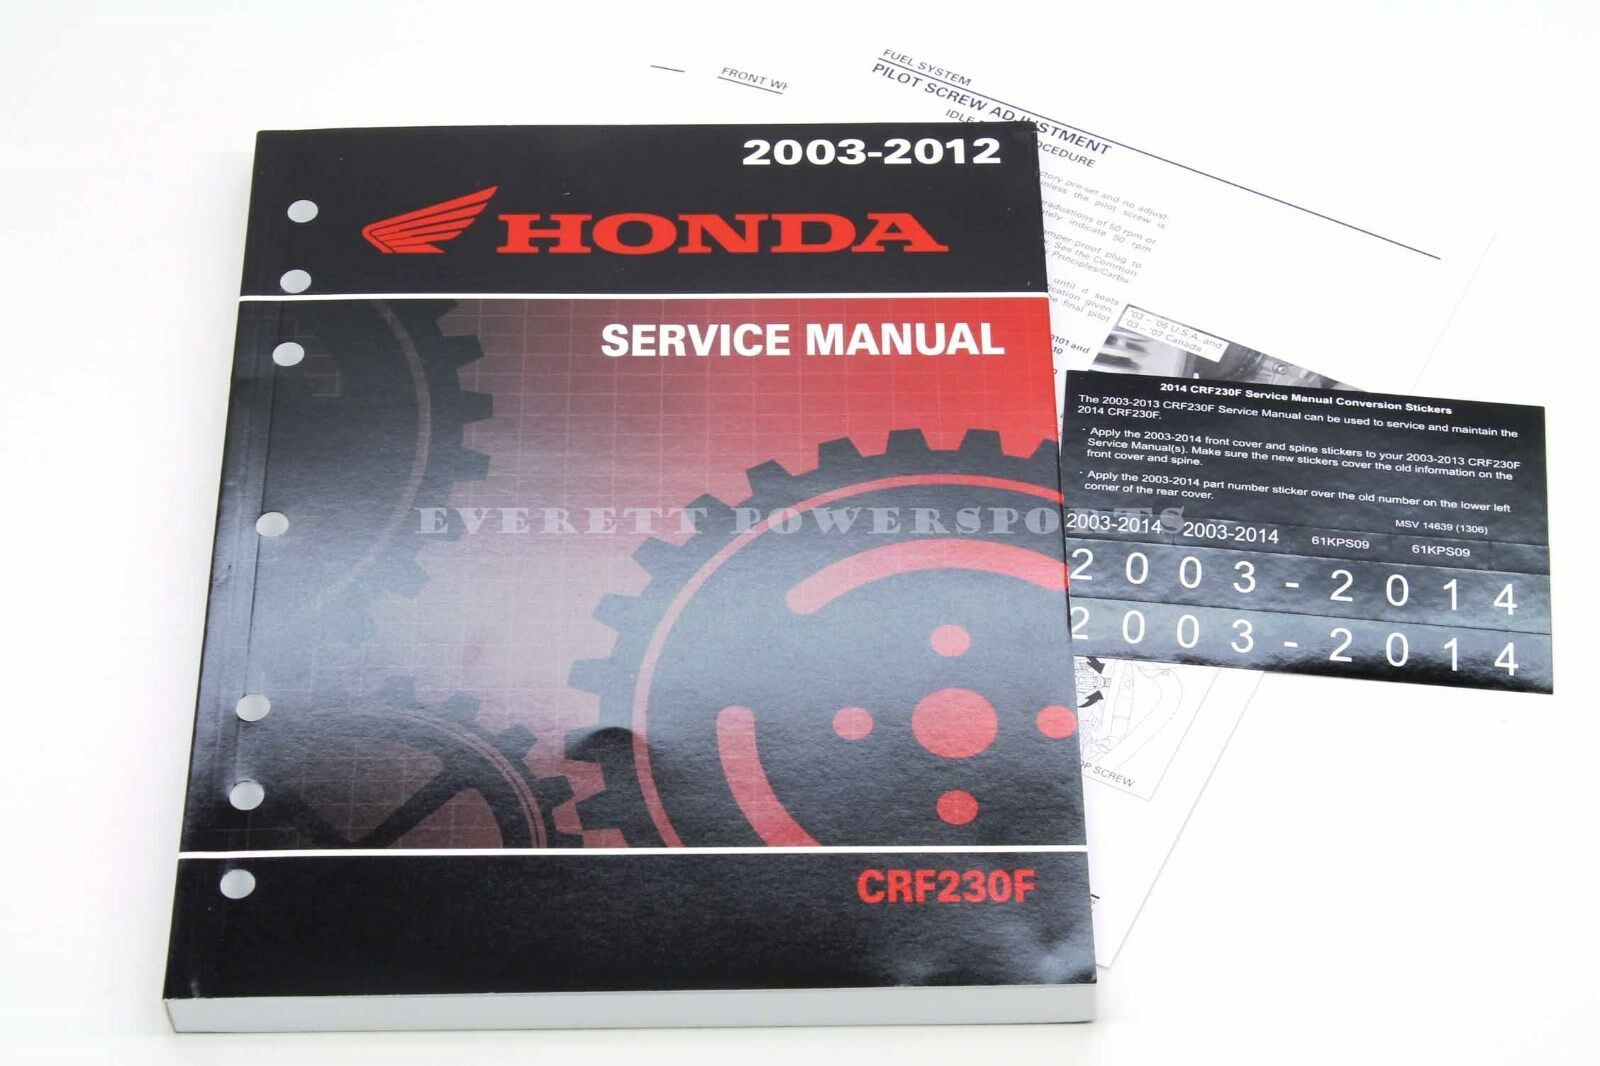 Crf230f Wiring Diagram Xr350r Crf250r Xr650l Service Manua 2003 2014 Crf 230 F Oem Honda Shop Repair Maintenance On